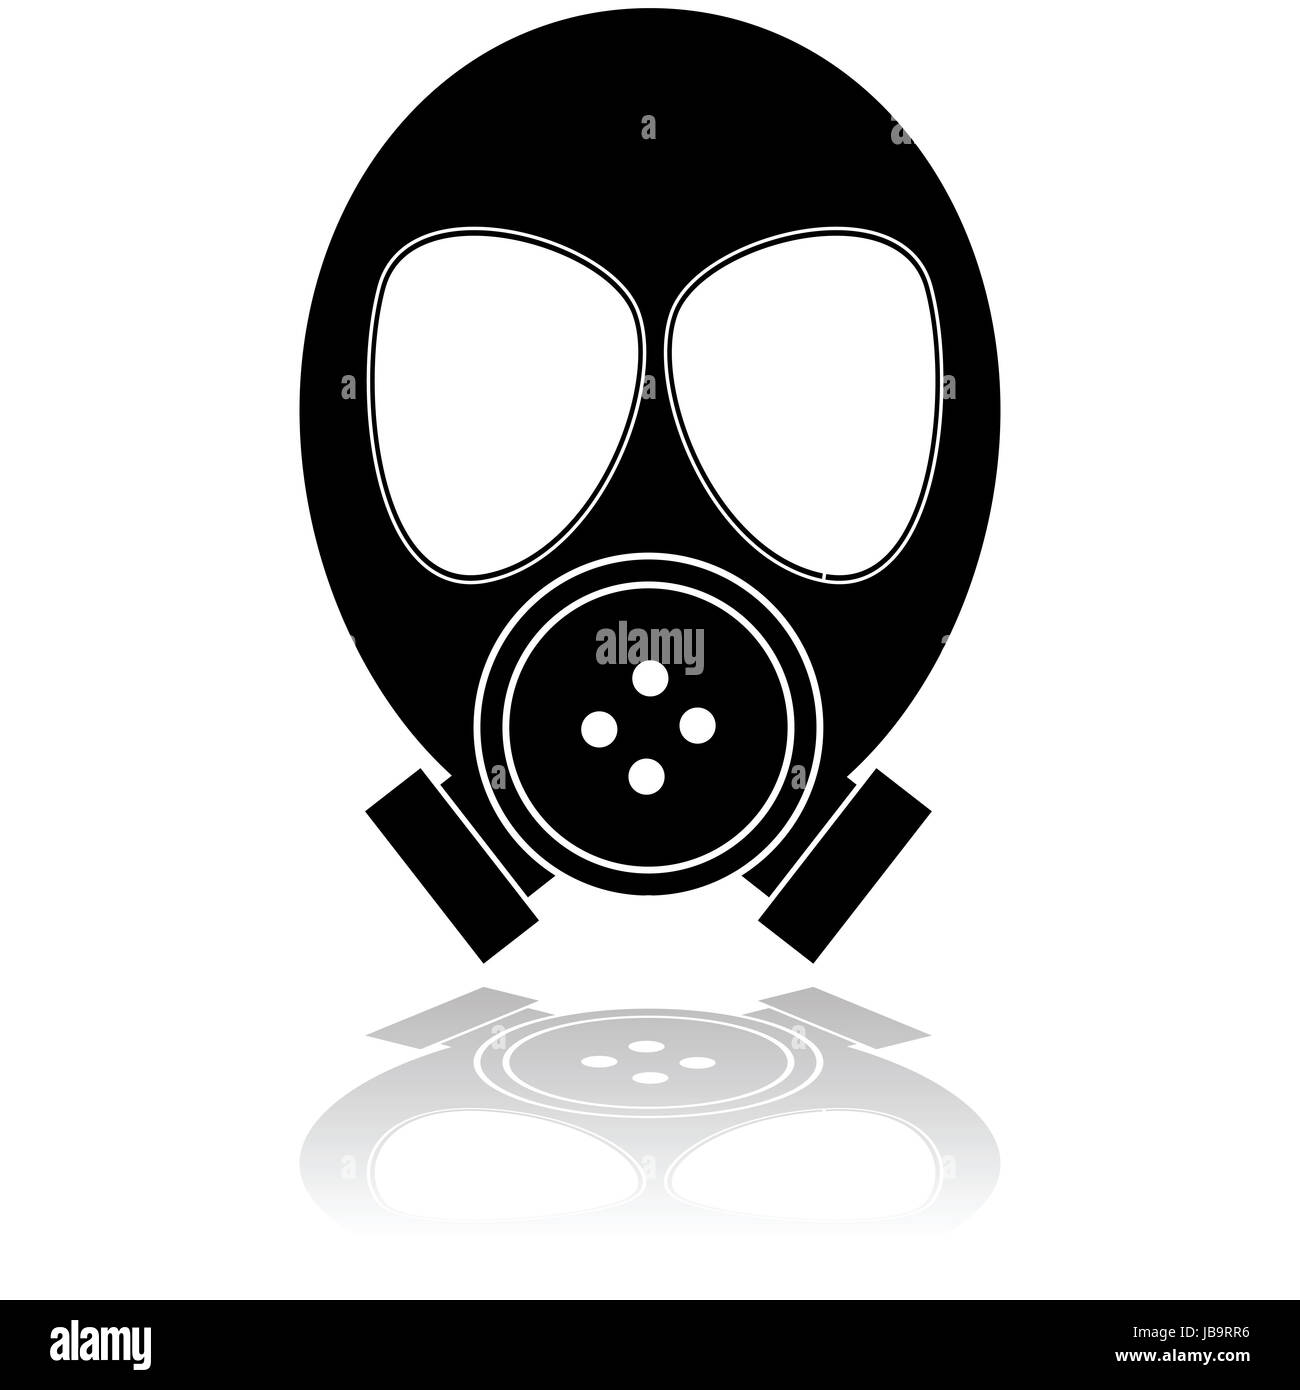 Icon illustration showing a mask used for protection against poisonous gas - Stock Image